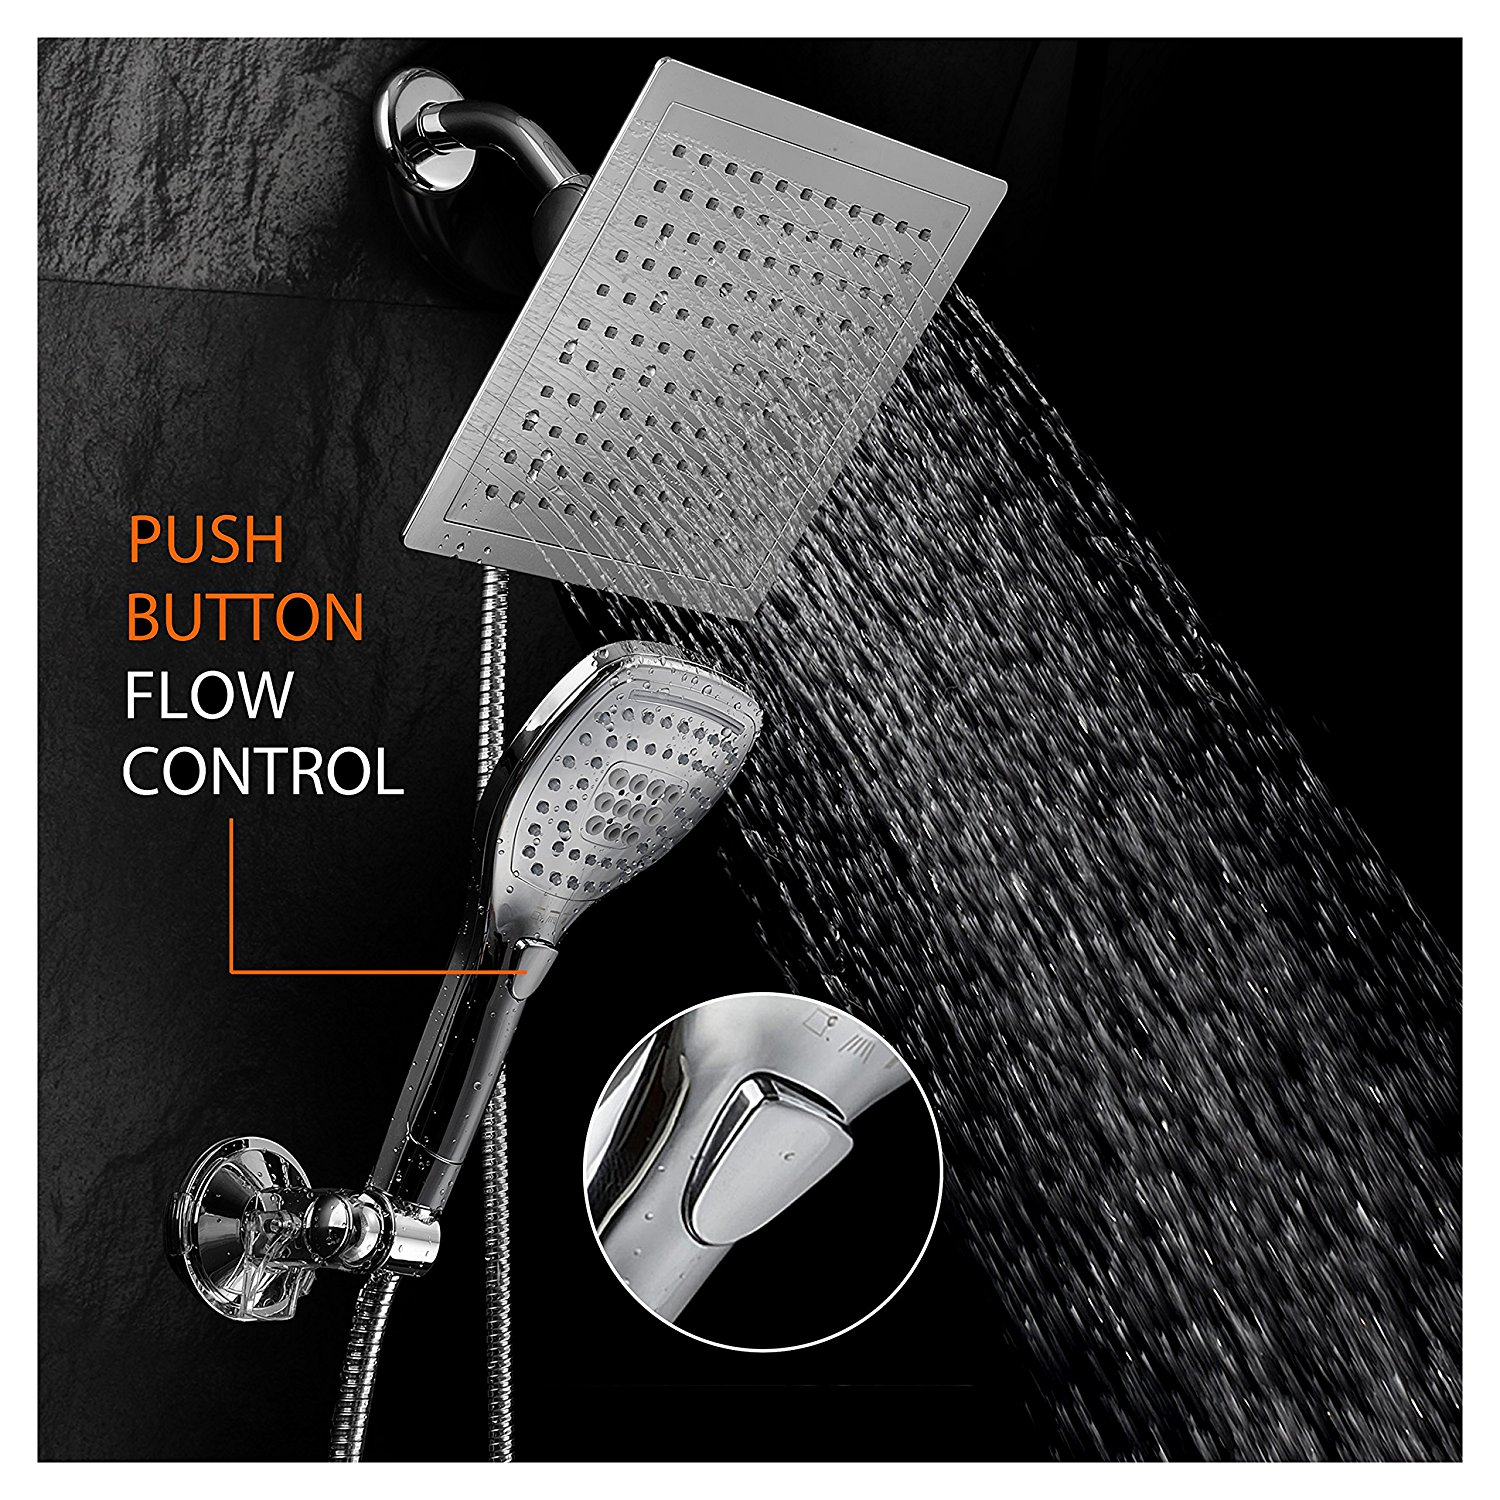 DreamSpa® Ultra-Luxury Rainfall Combo with Revolutionary Push-Control Hand Shower (Oval Square)